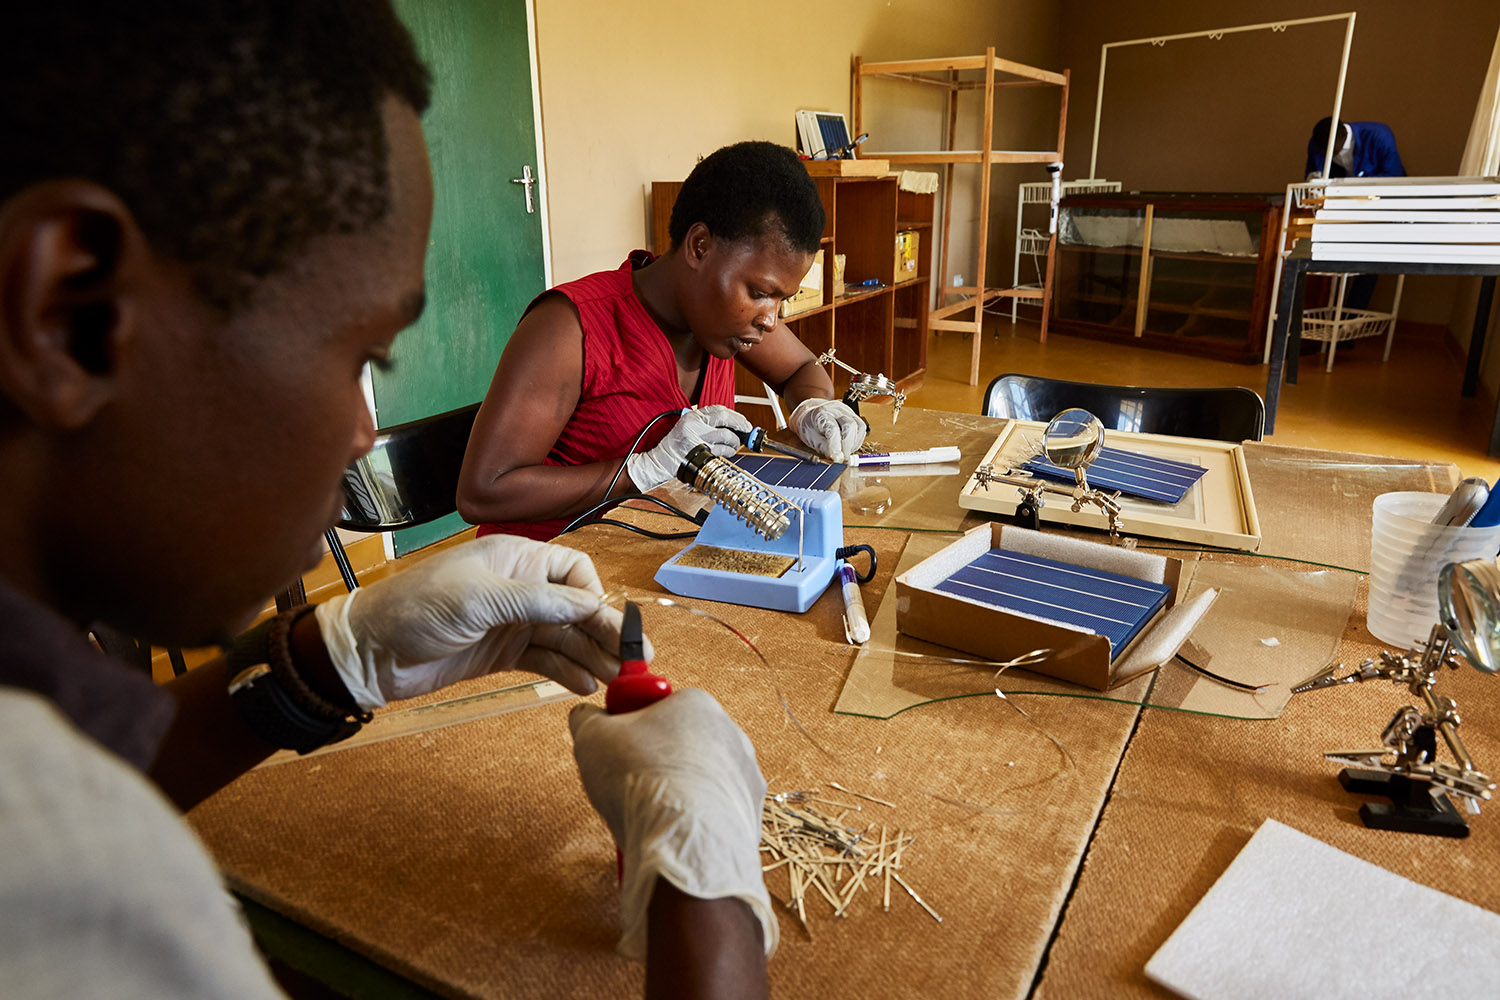 Alex and Jennifer, students at Green Malata, learn how to assemble solar panels, Luchenza, southern Malawi, 2017.  Green Malata teaches a variety of renewable energy skills, including solar panel building and maintenance, biogas generation, and wind turbines. As solar panel technology becomes cheaper and easier to use, training villages like Green Malata can afford to not only use them as part of their curriculum, but also to sell and rent them out to local villagers, providing much needed extra income.